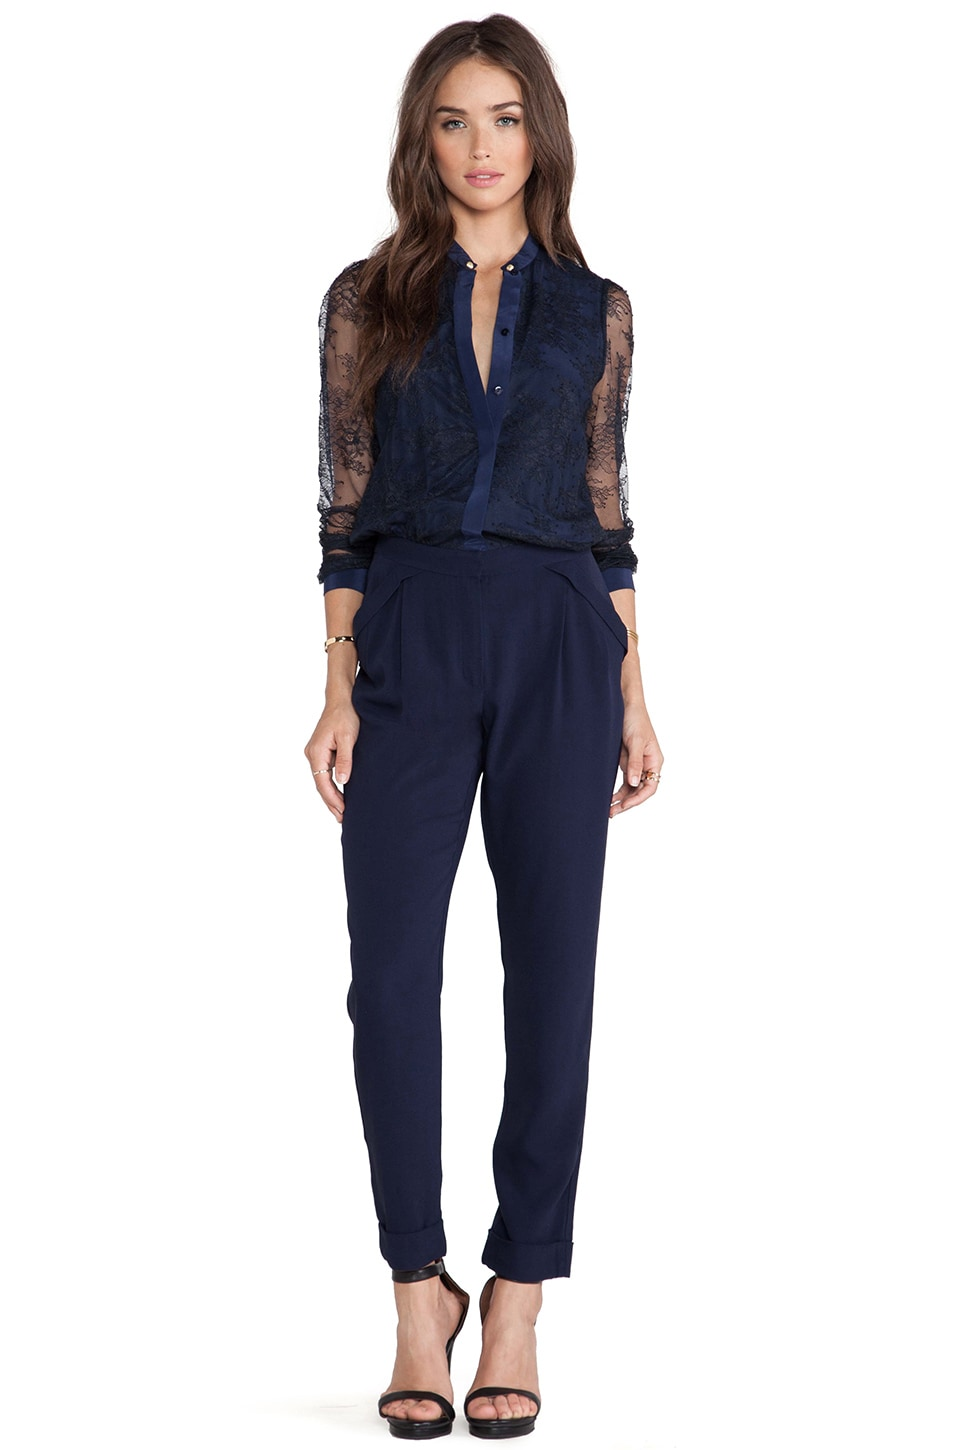 Marchesa Voyage Buttoned Yoke Jumpsuit in French Navy & Black